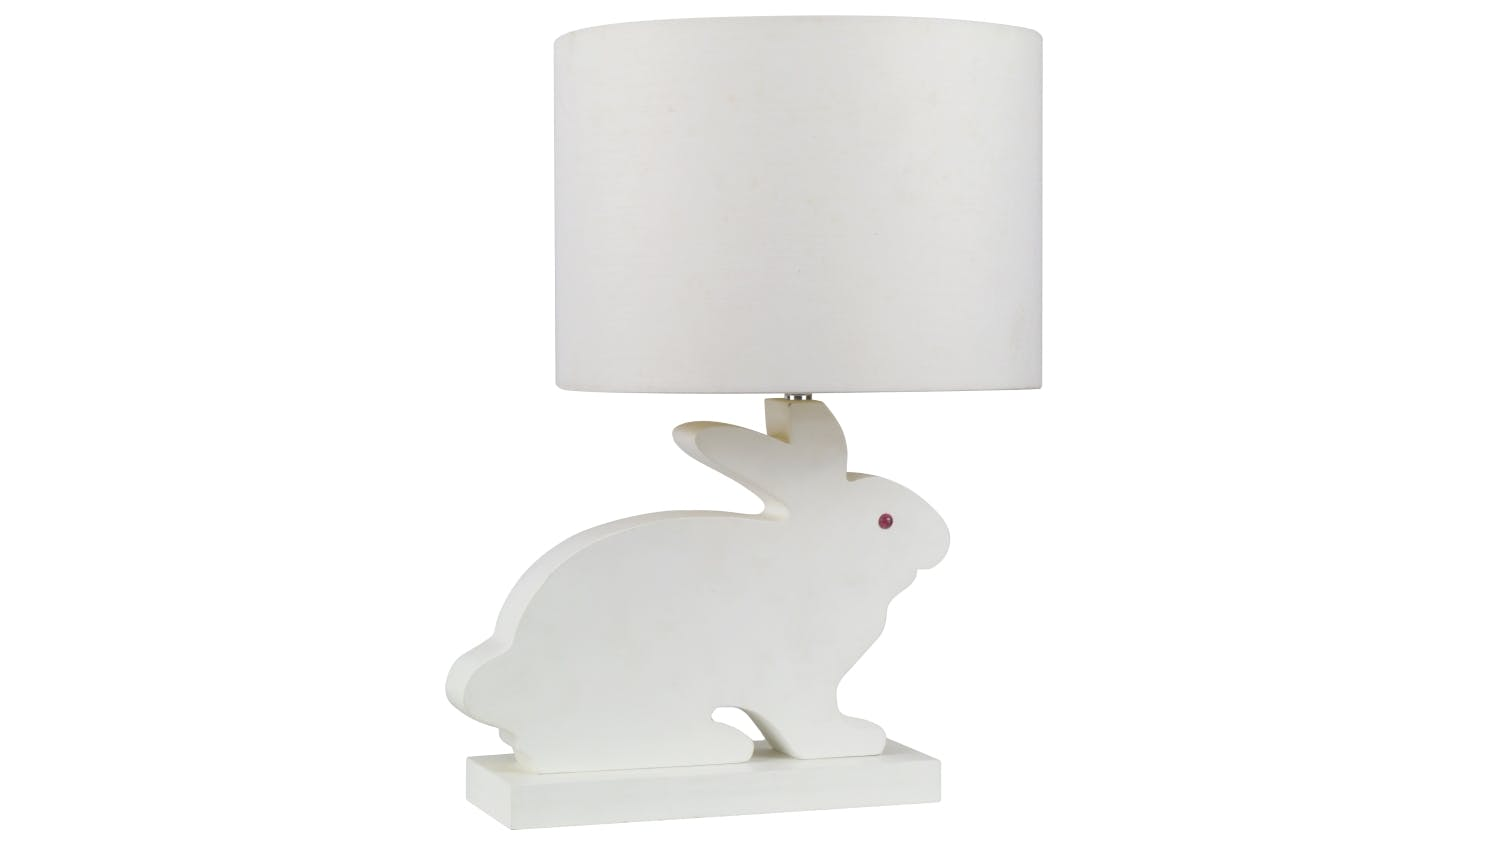 nightlight light stock poundbury in lighting ceramic rabbit product white kids england magpie lamp